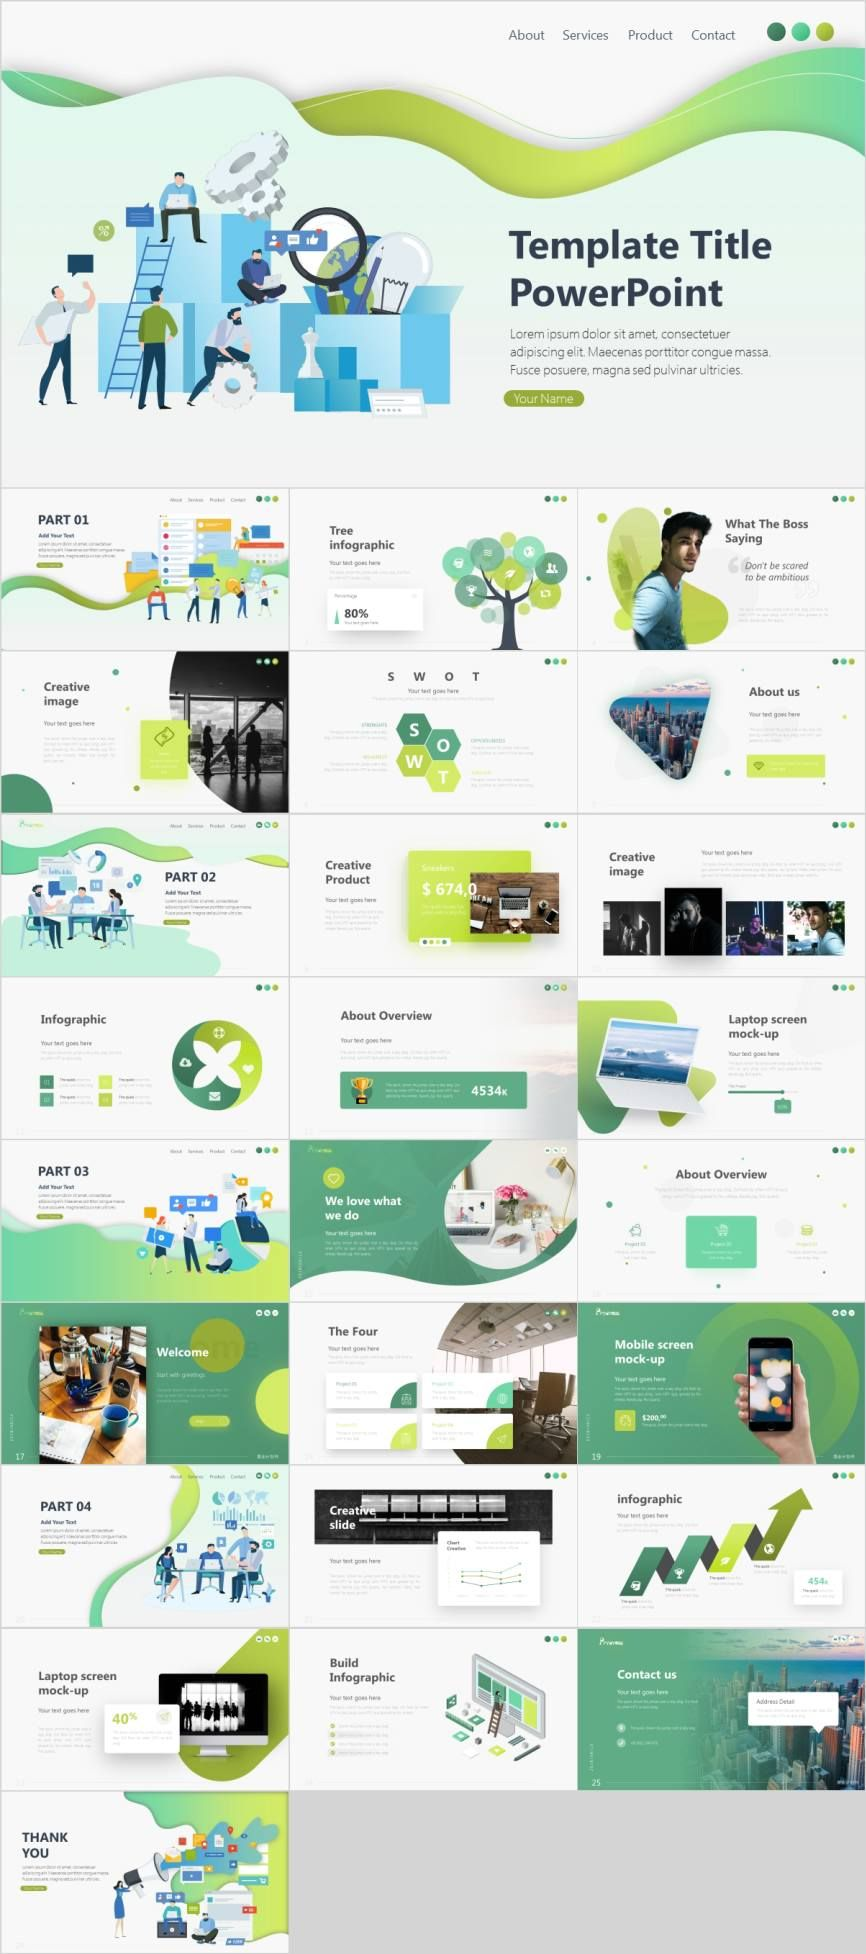 Best multipurpose & creative company report template - Pcslide.com#powerpoint #templates #presentation #animation #backgrounds #pcslide.com #annual #report #business #company #design #creative #slide #infographic #chart #themes #ppt #pptx #slideshow #office #microsoft #envato #graphicriver #creativemarket #powerpoint